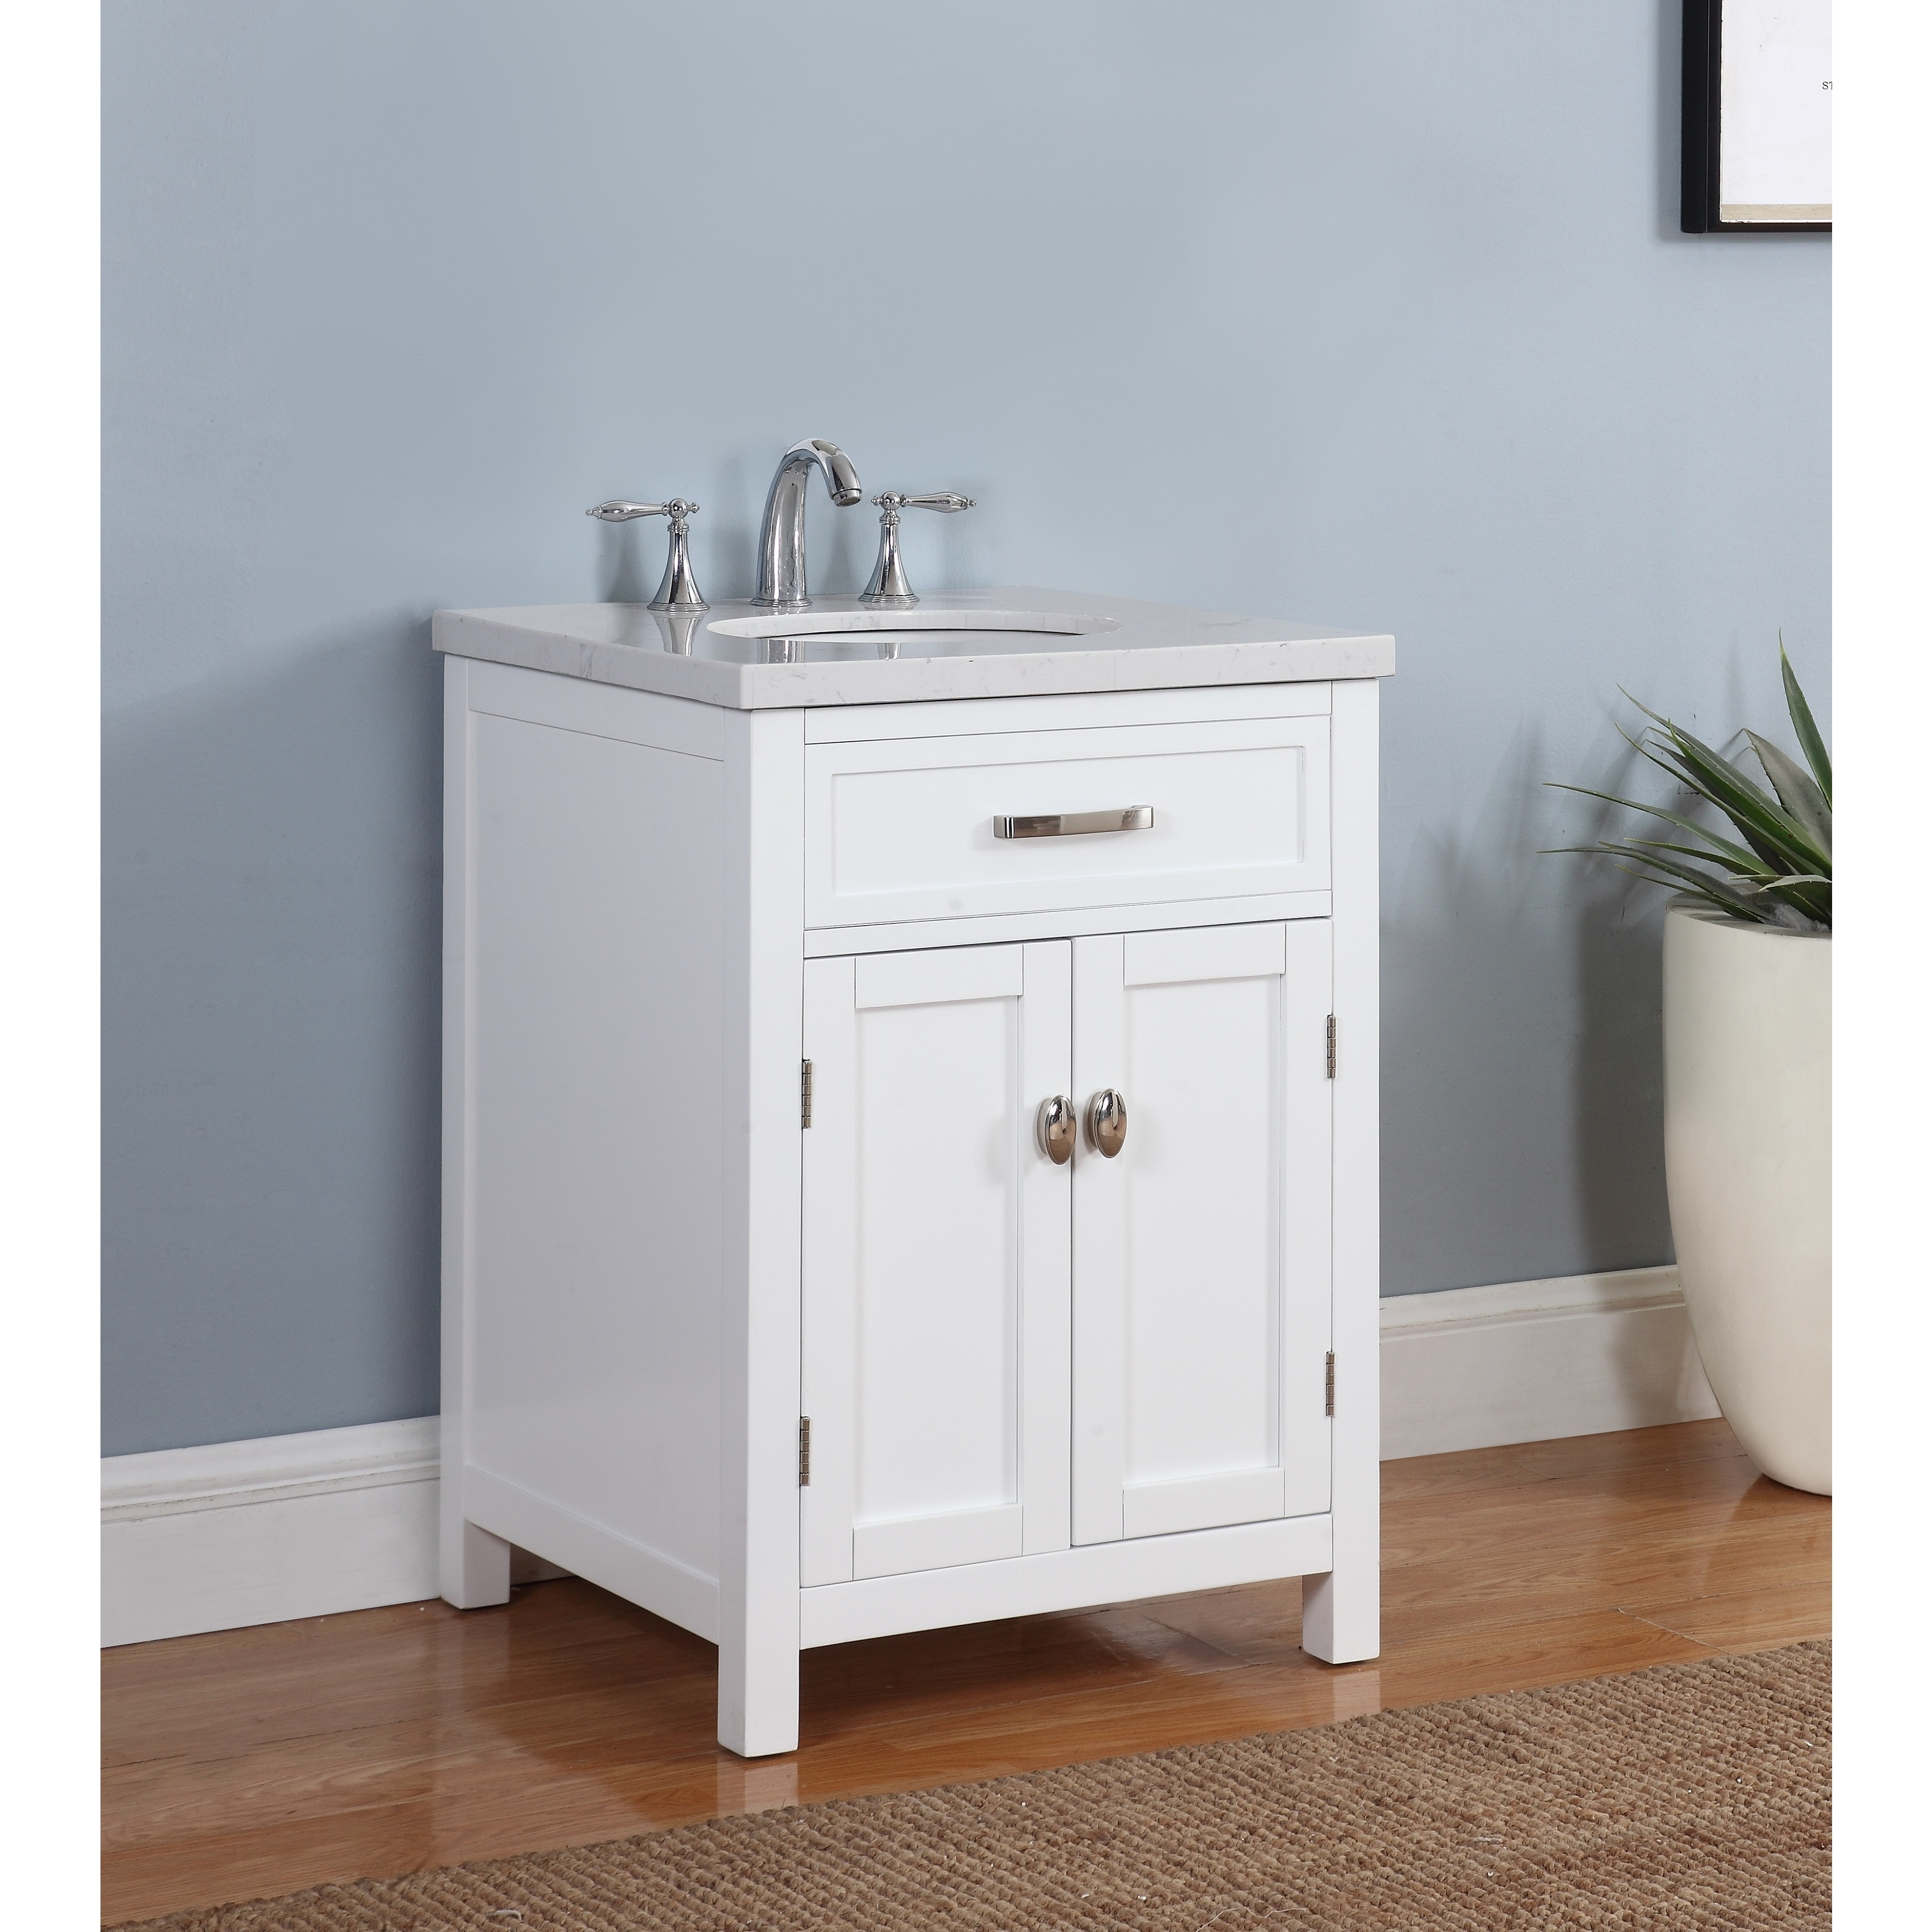 Shop solana bathroom vanity in white finish with grey and white marble top free shipping today overstock com 16150873